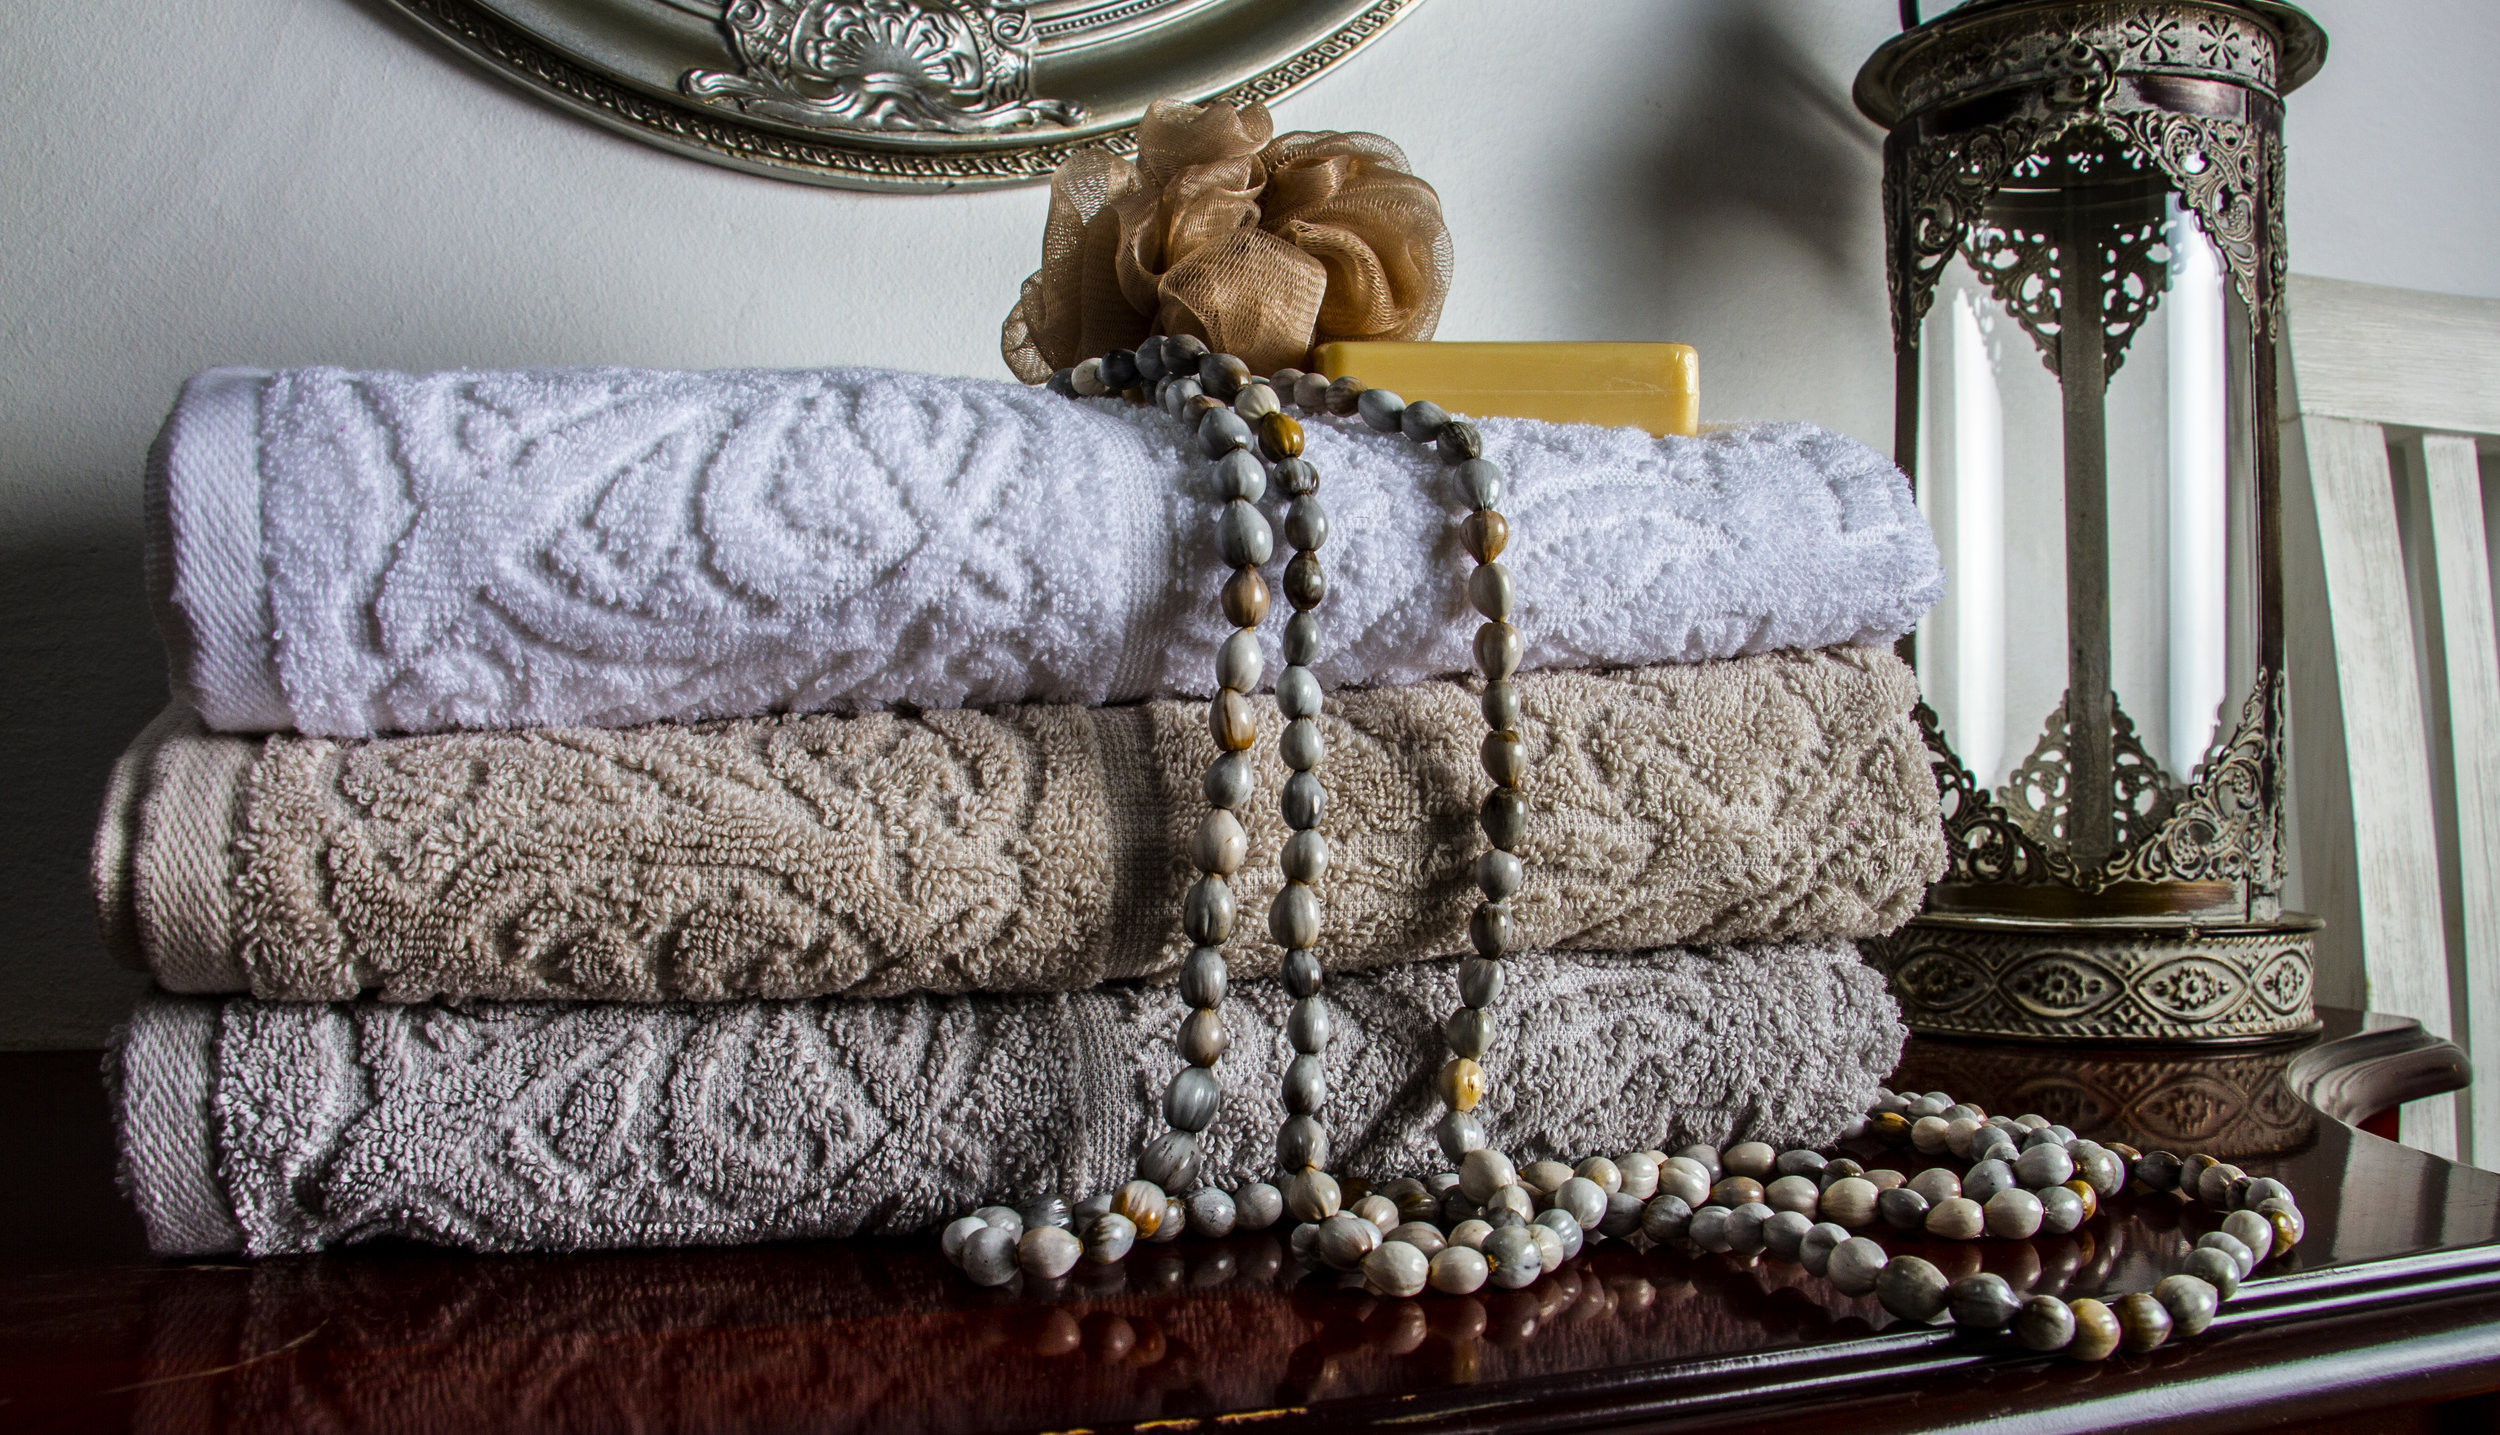 SPA  Relax in your sauna or step out of a shower in these luxurious Terry Towels. Thick, soft and thirsty 100% cotton towels will wrap you in warmth while absorbing moisture. Pamper yourself in the luxury you deserve